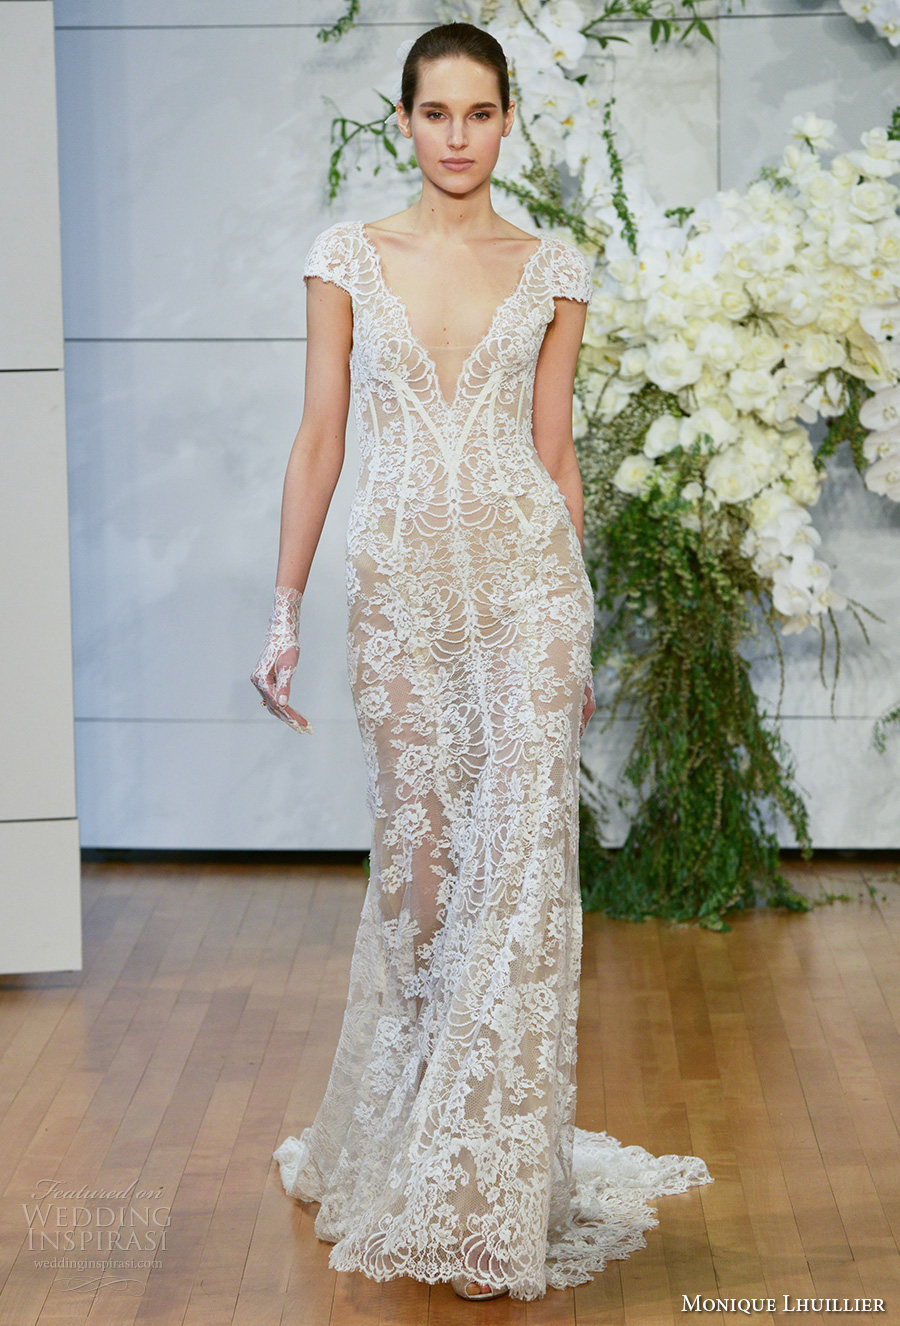 Monique lhuillier spring 2018 wedding dresses new york for Monique lhuillier wedding dress